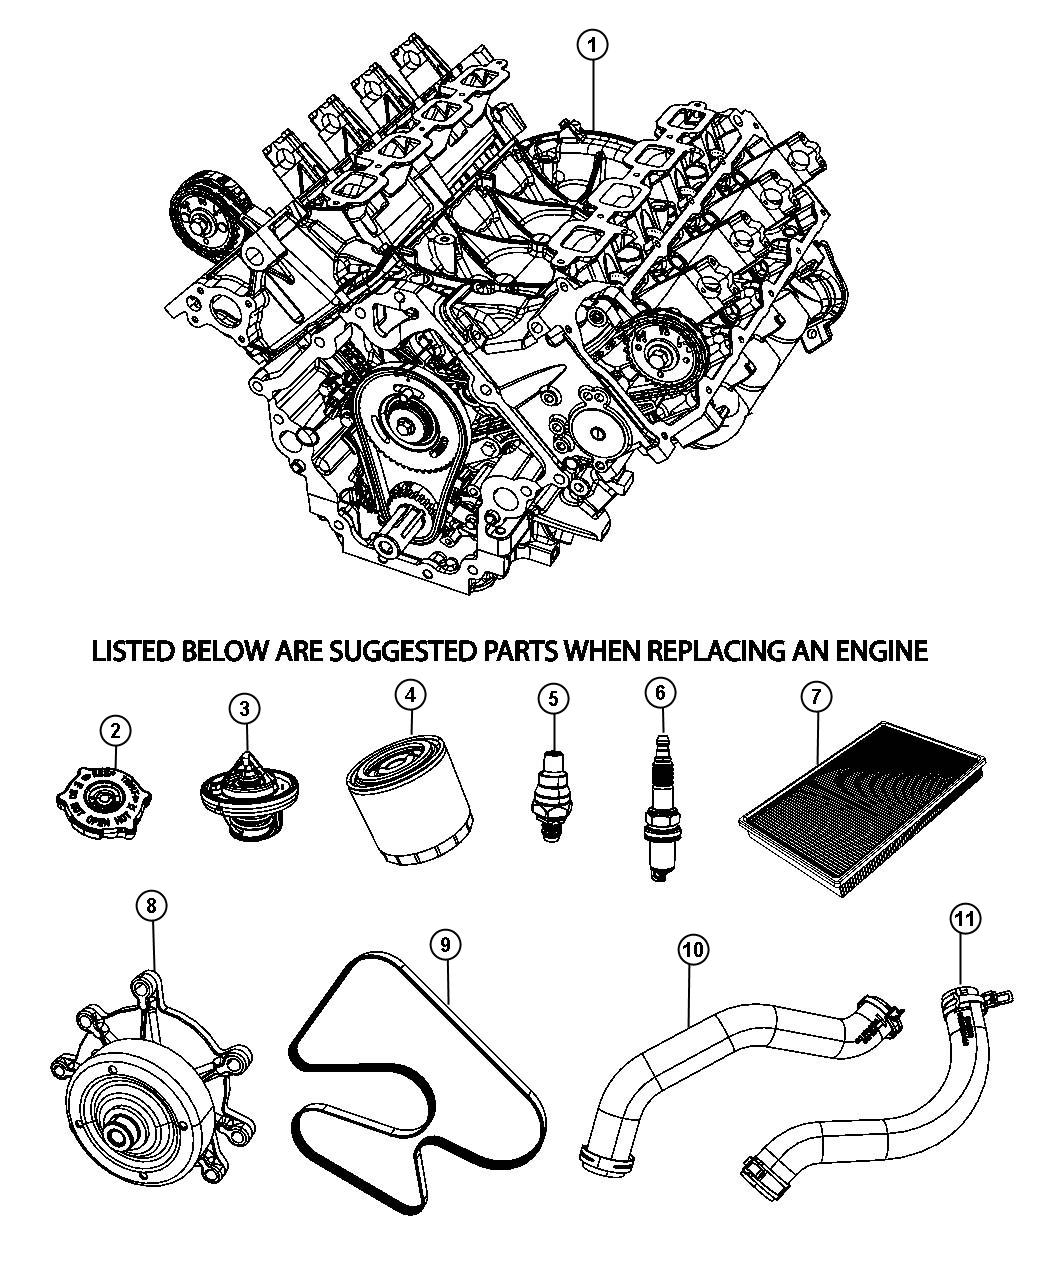 2012 Dodge Grand Caravan Belt  Accessory Drive  Serpentine  Engine  Engines  Suggested